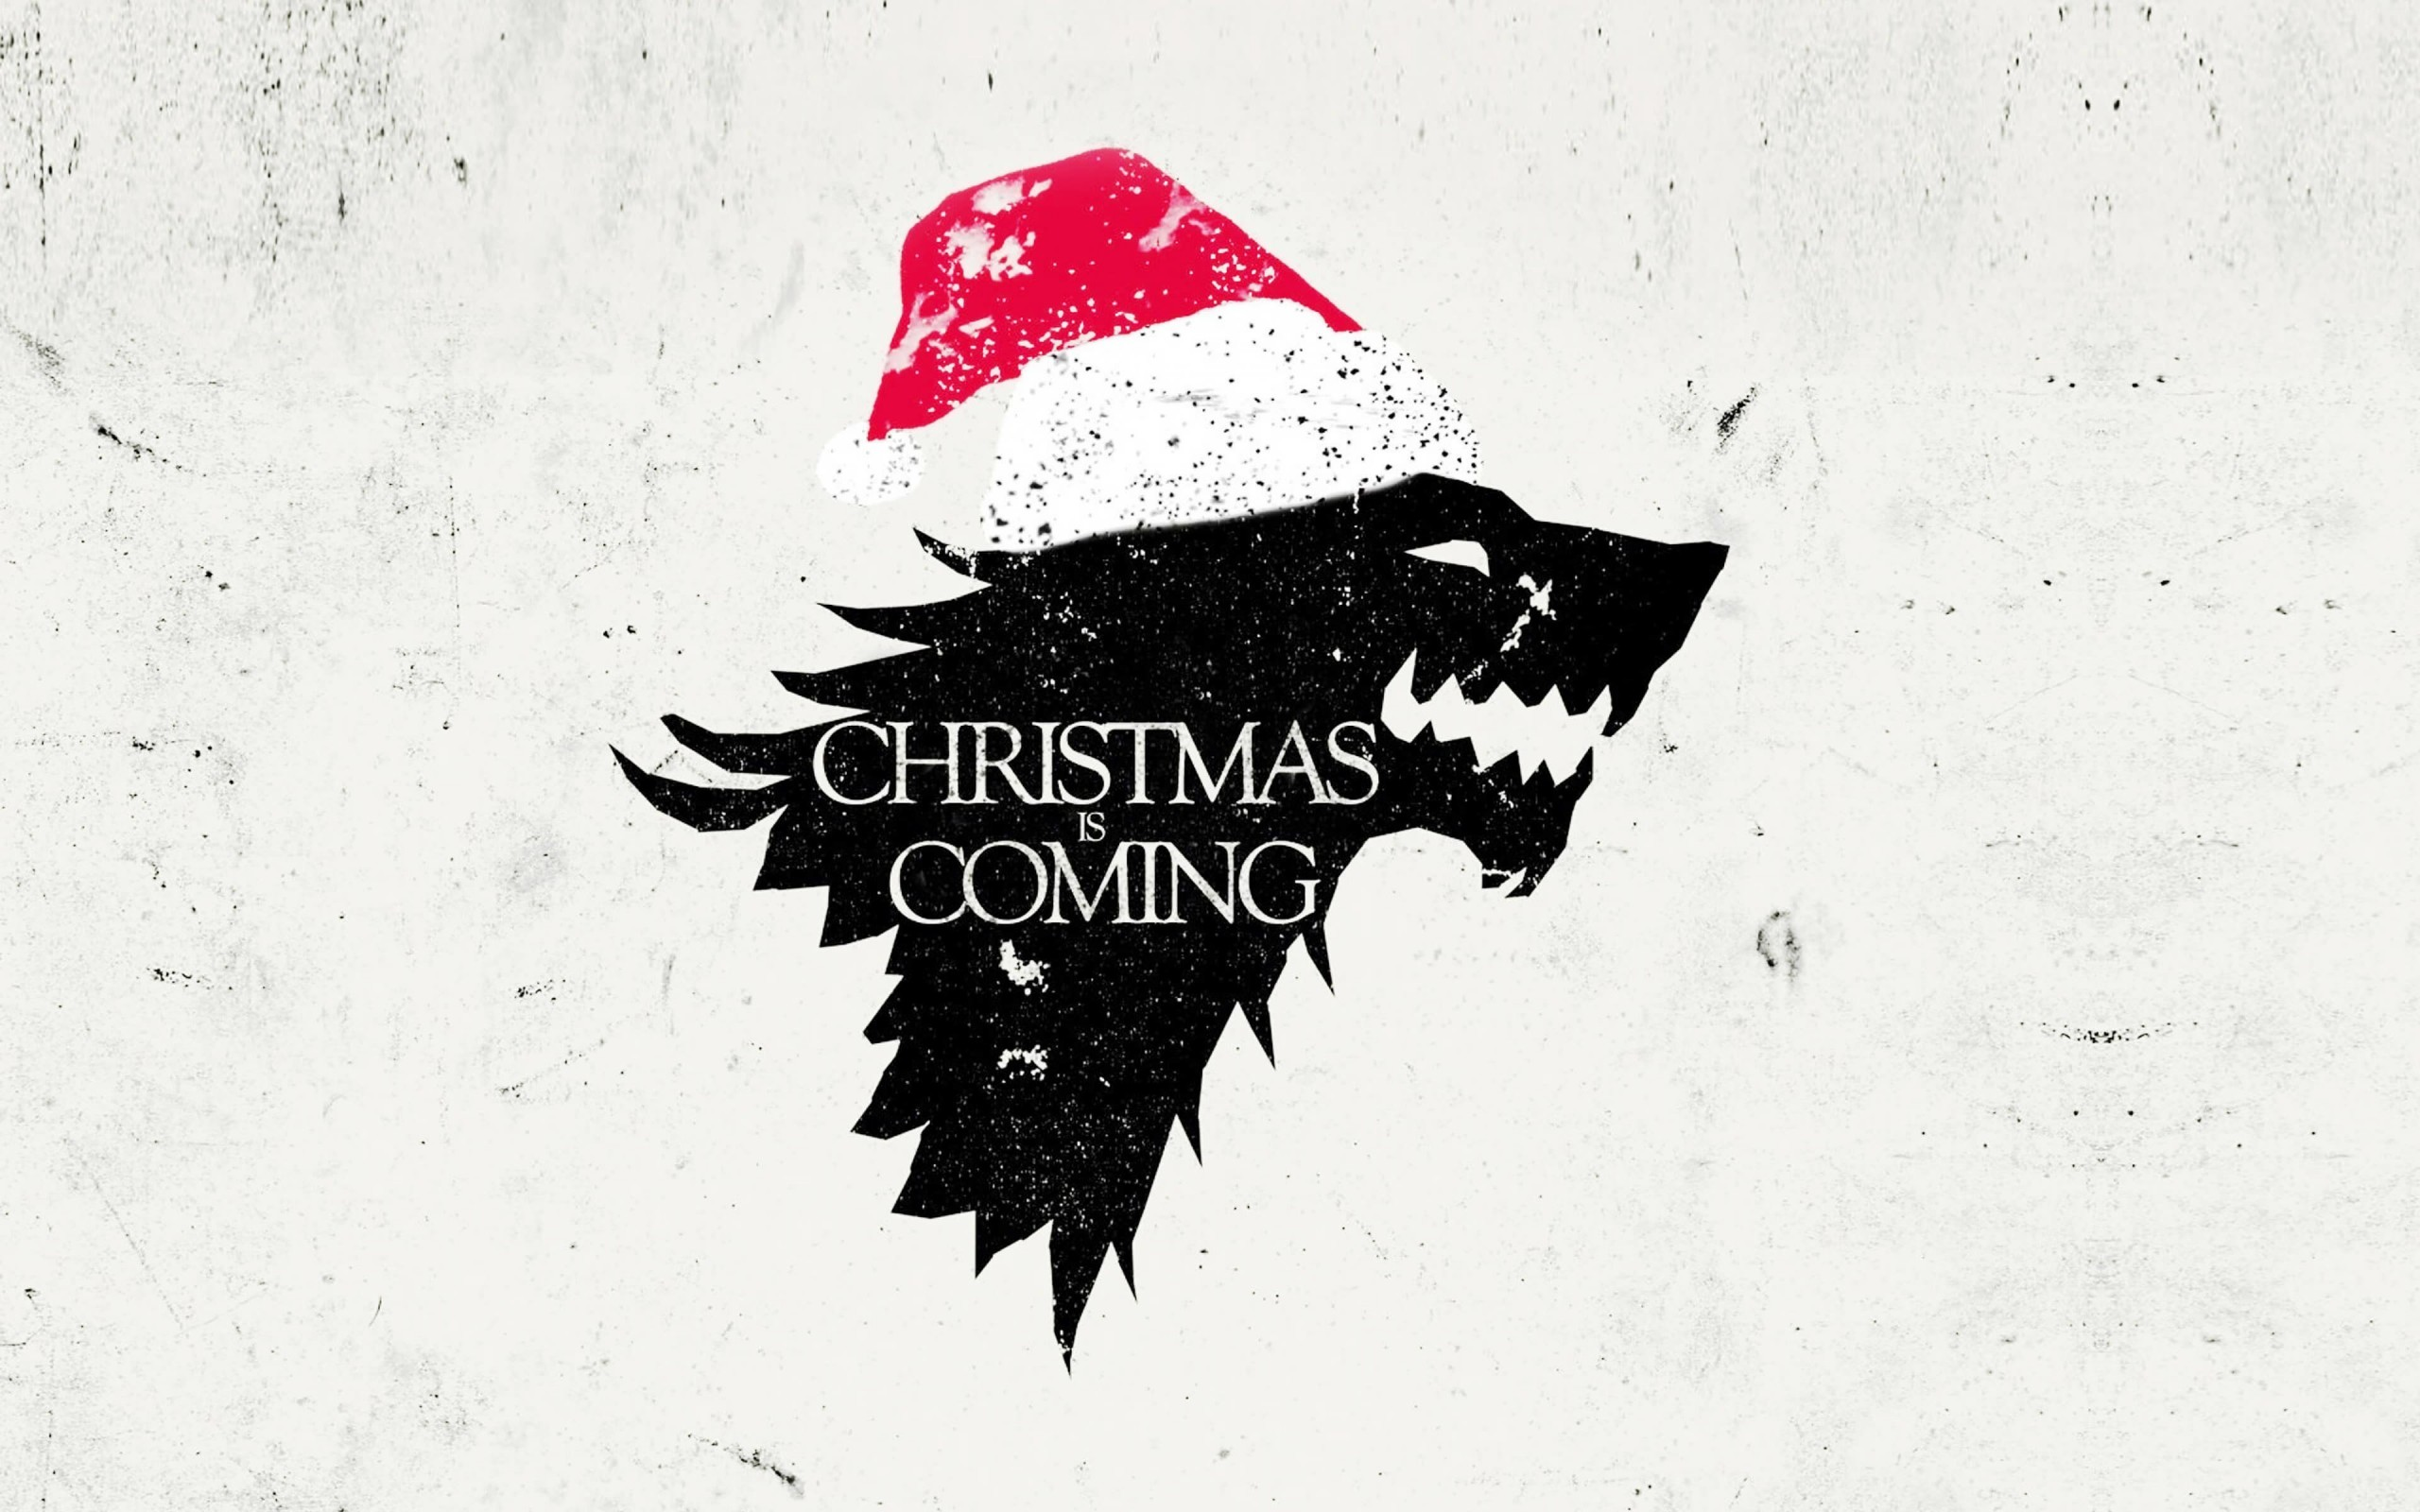 Christmas is Coming Wallpaper for Desktop 2560x1600